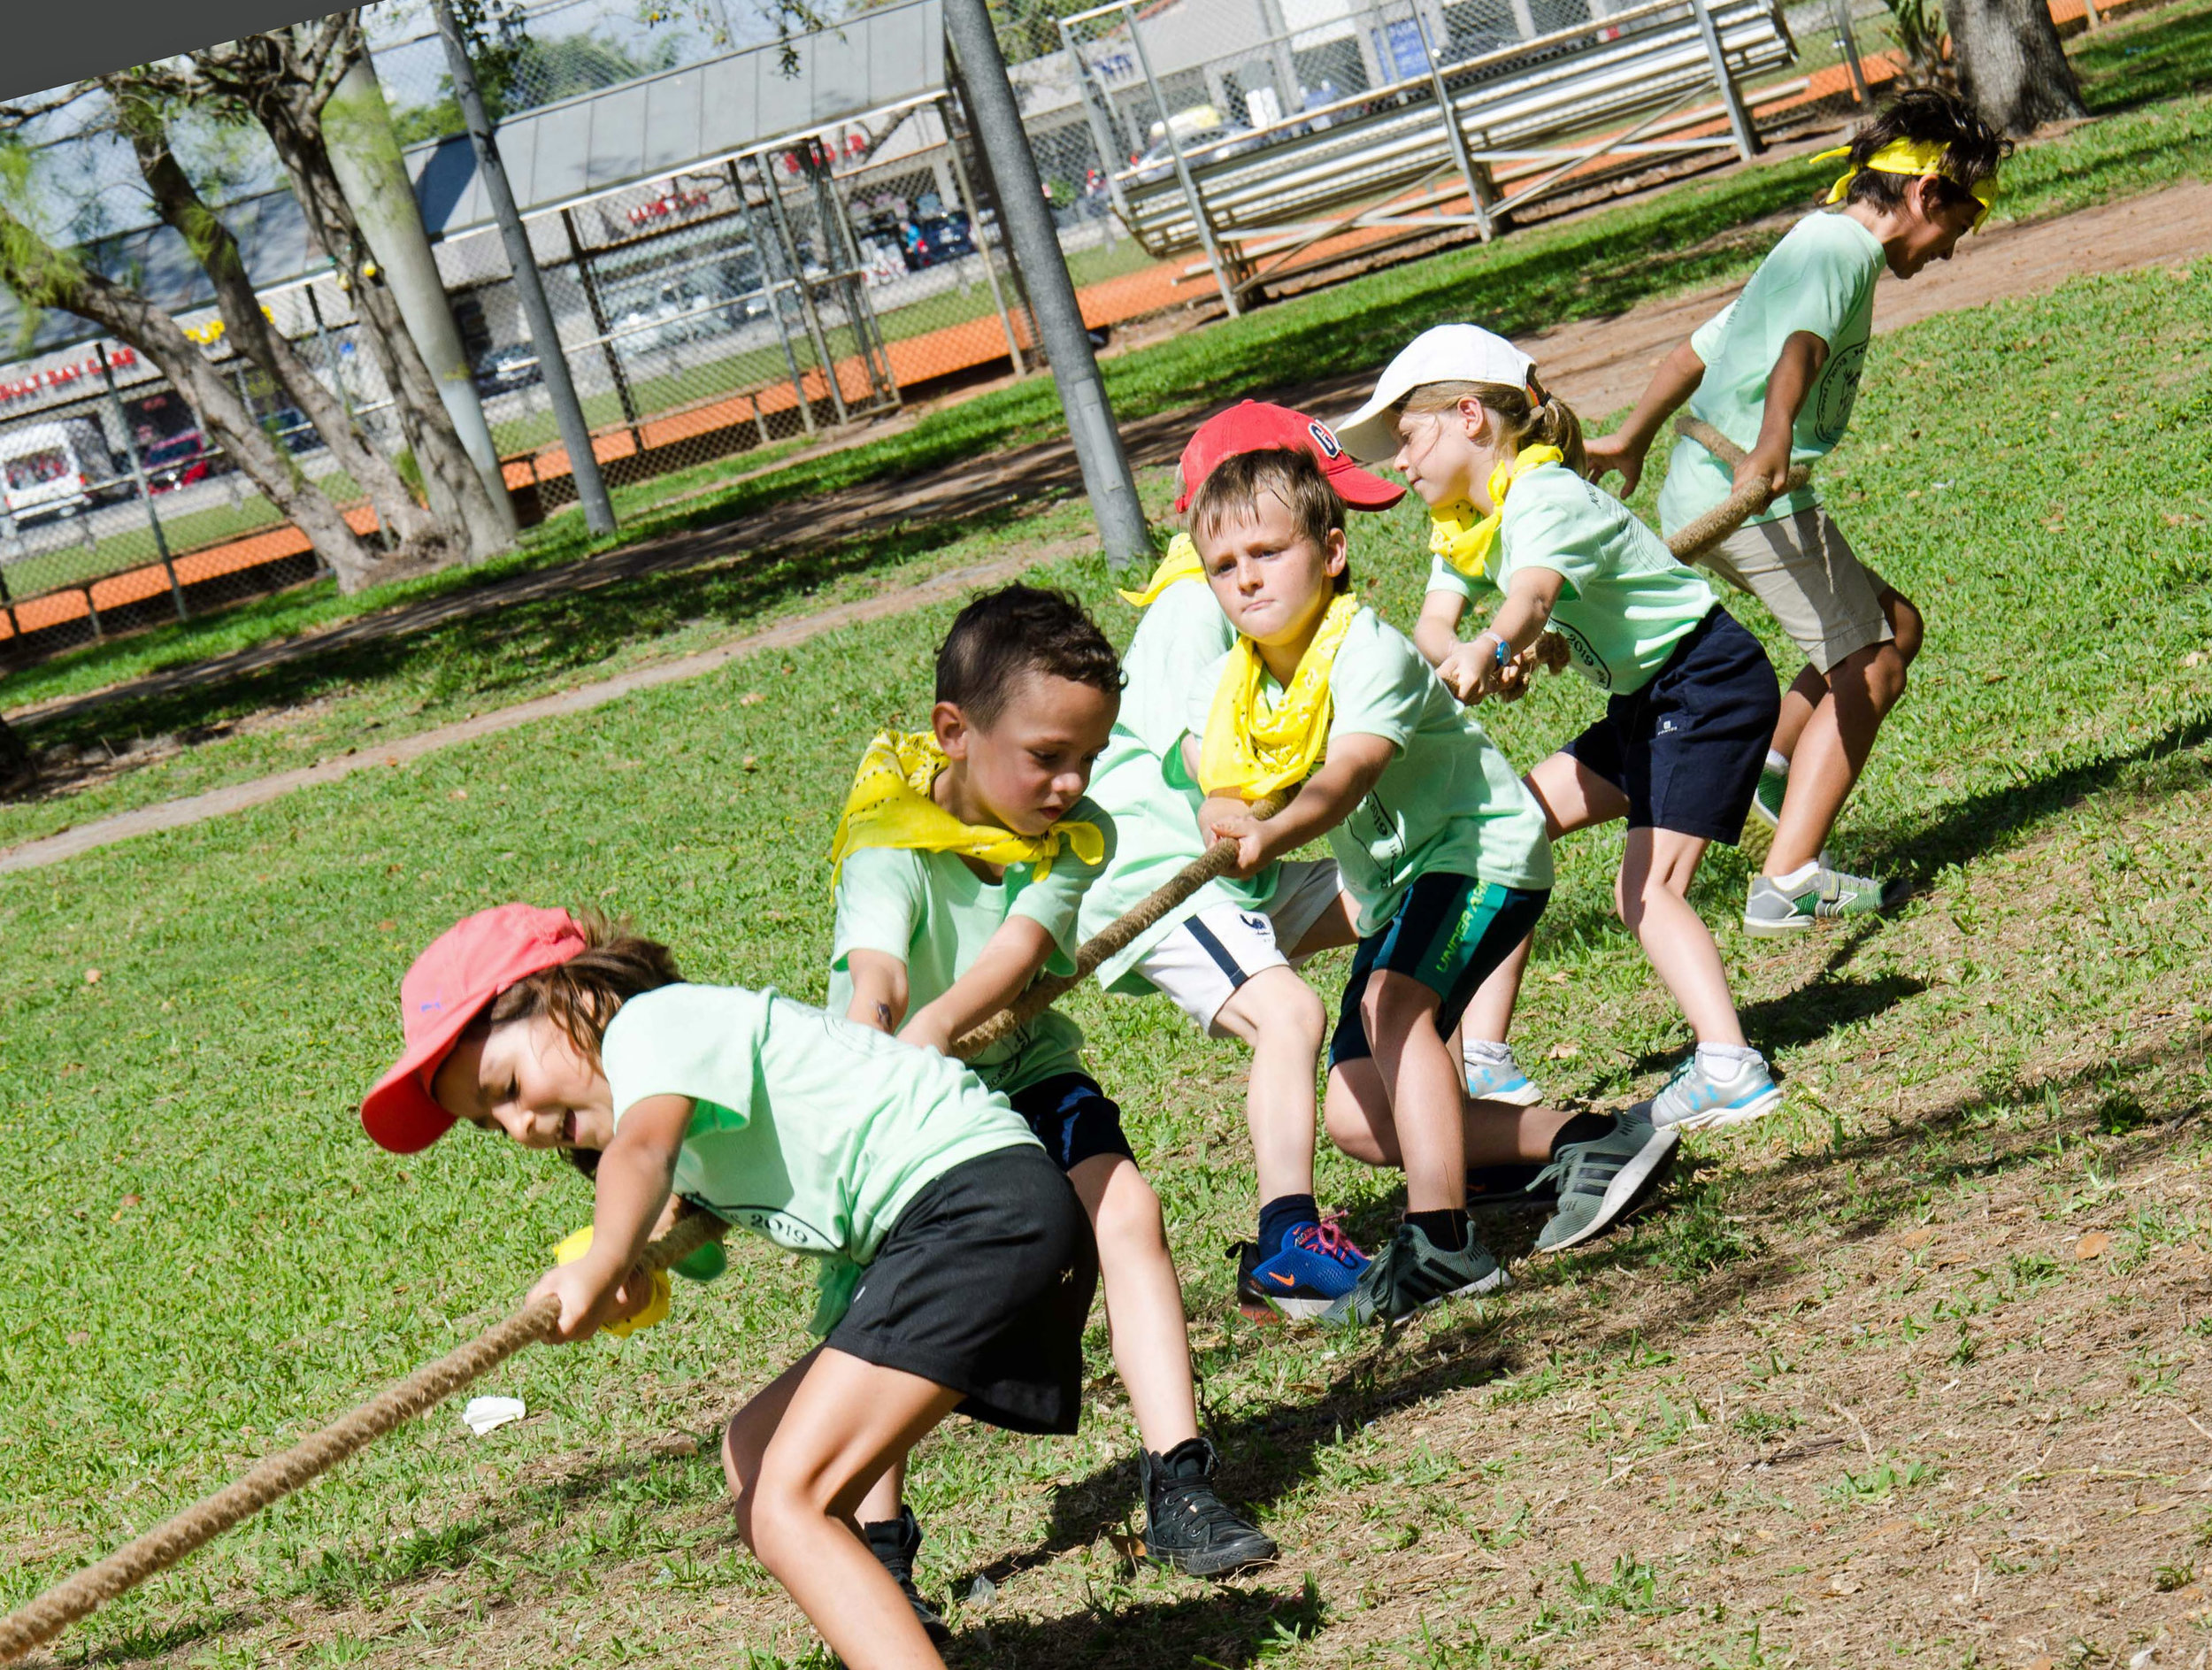 sports-day-french-school-miami-tropical-park.jpg